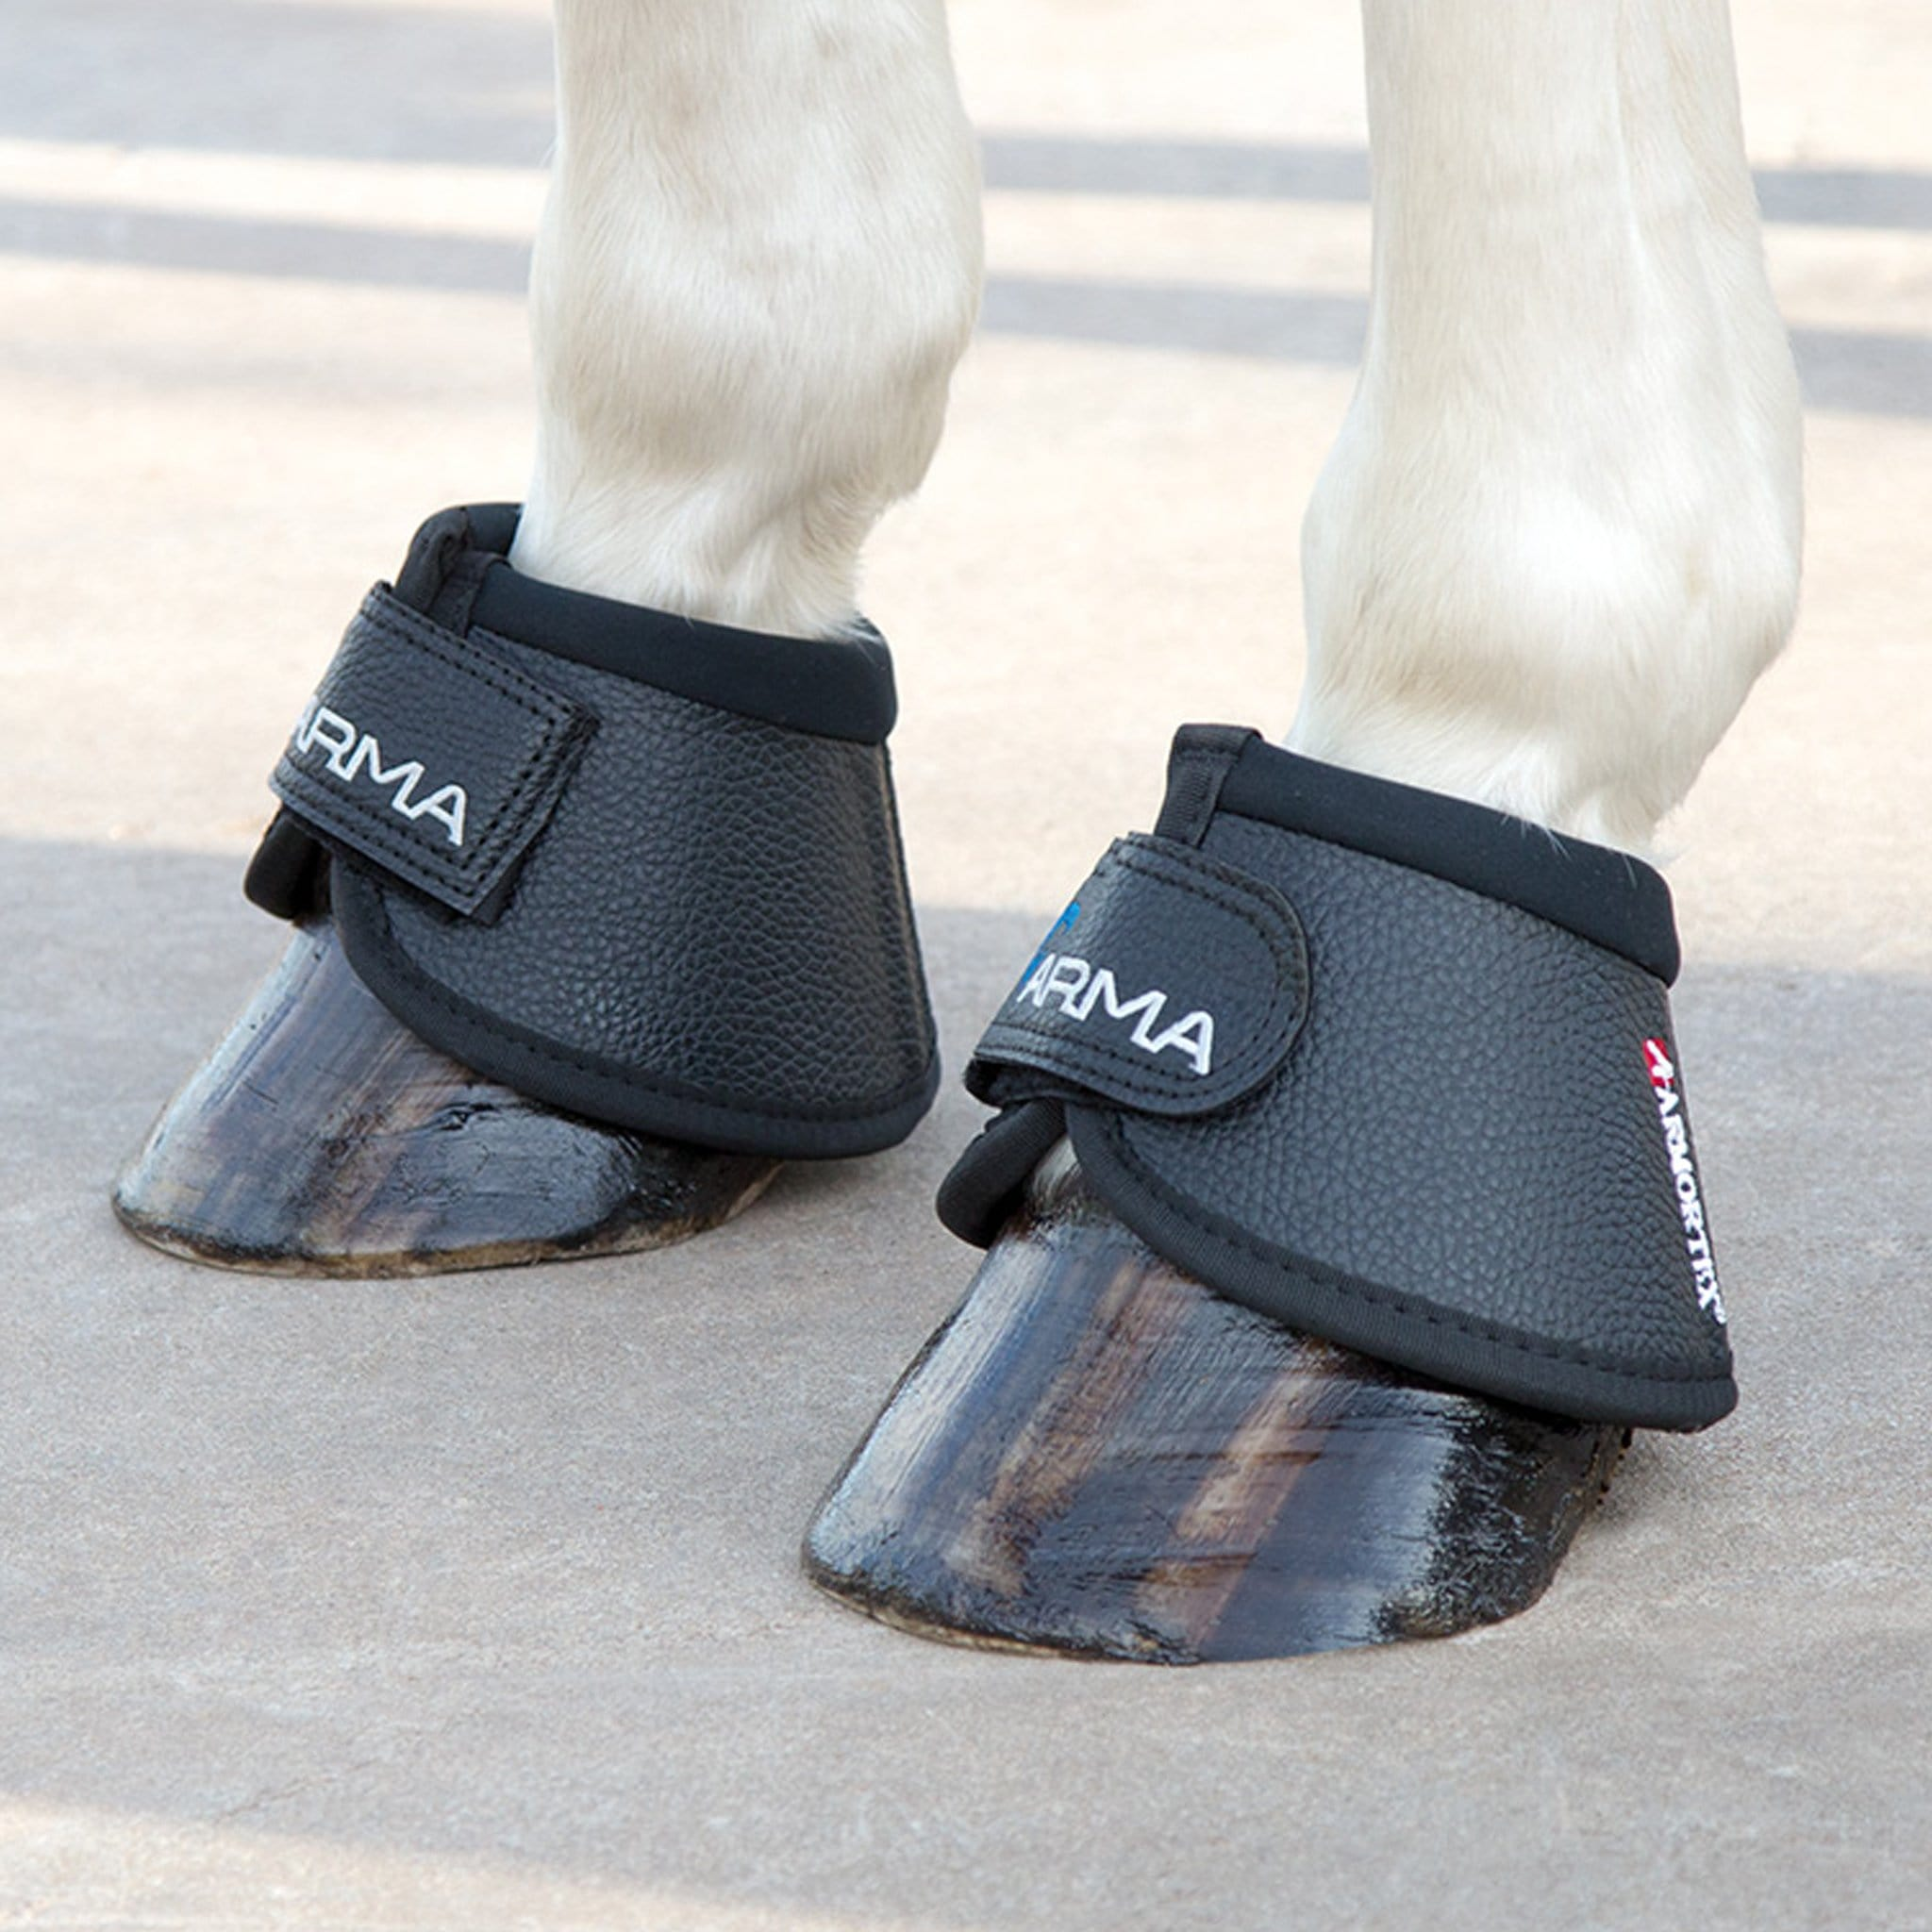 Shires ARMA Comfort Over Reach Boots 1890 Black